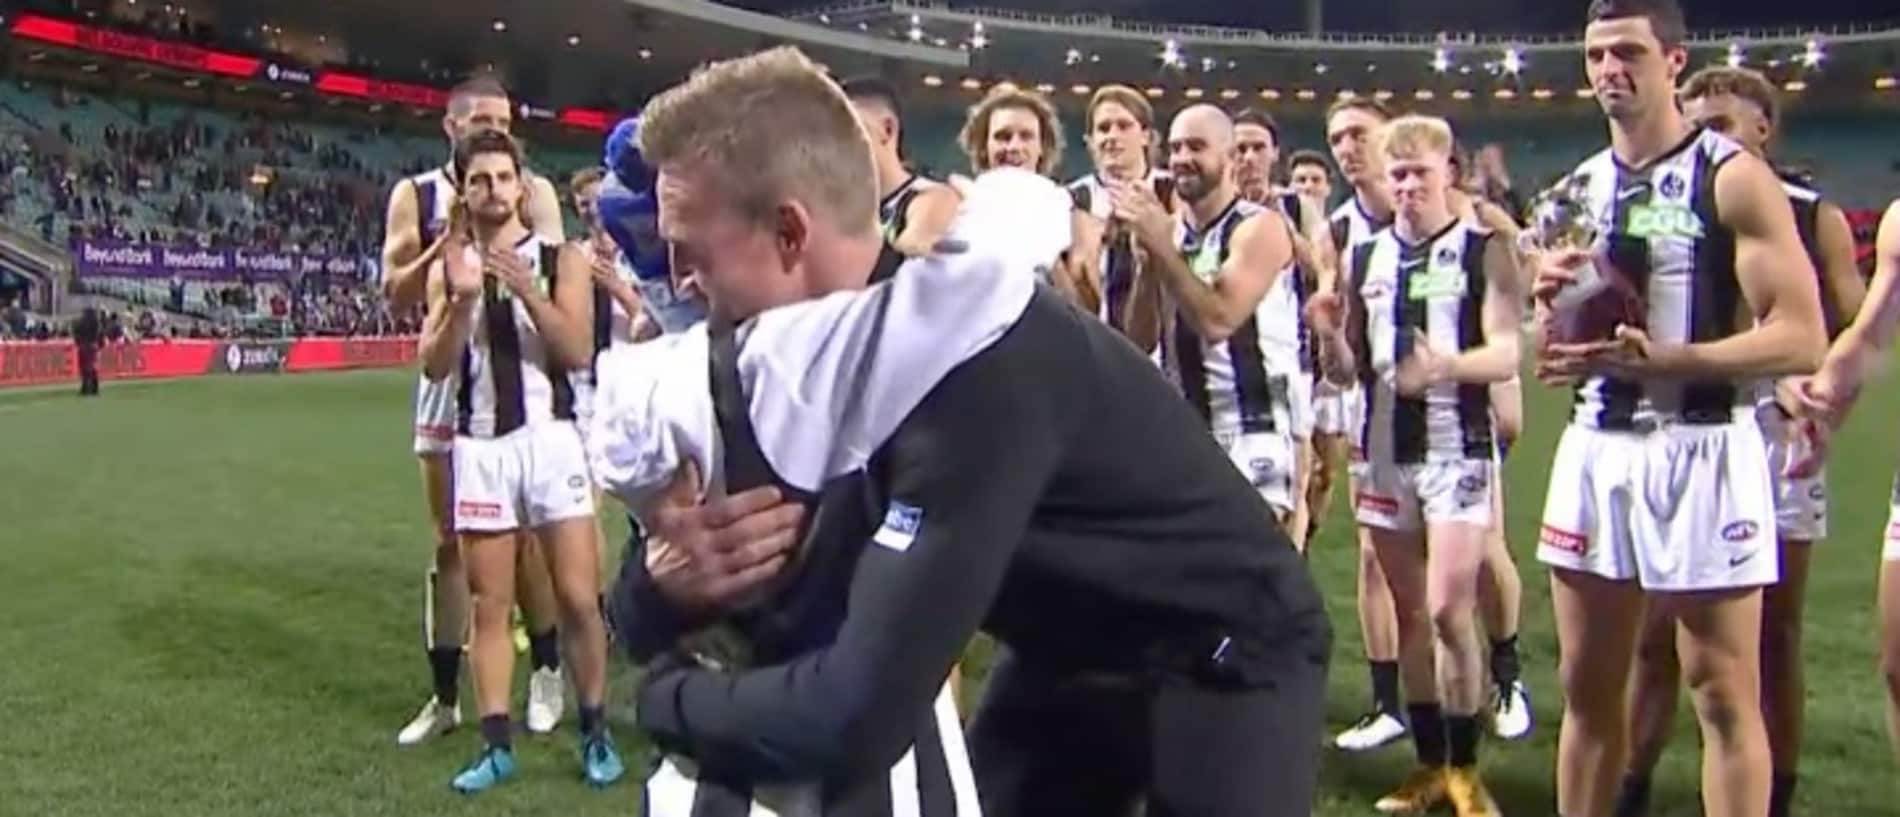 Nathan Buckley got a win in his final game as Collingwood coach.